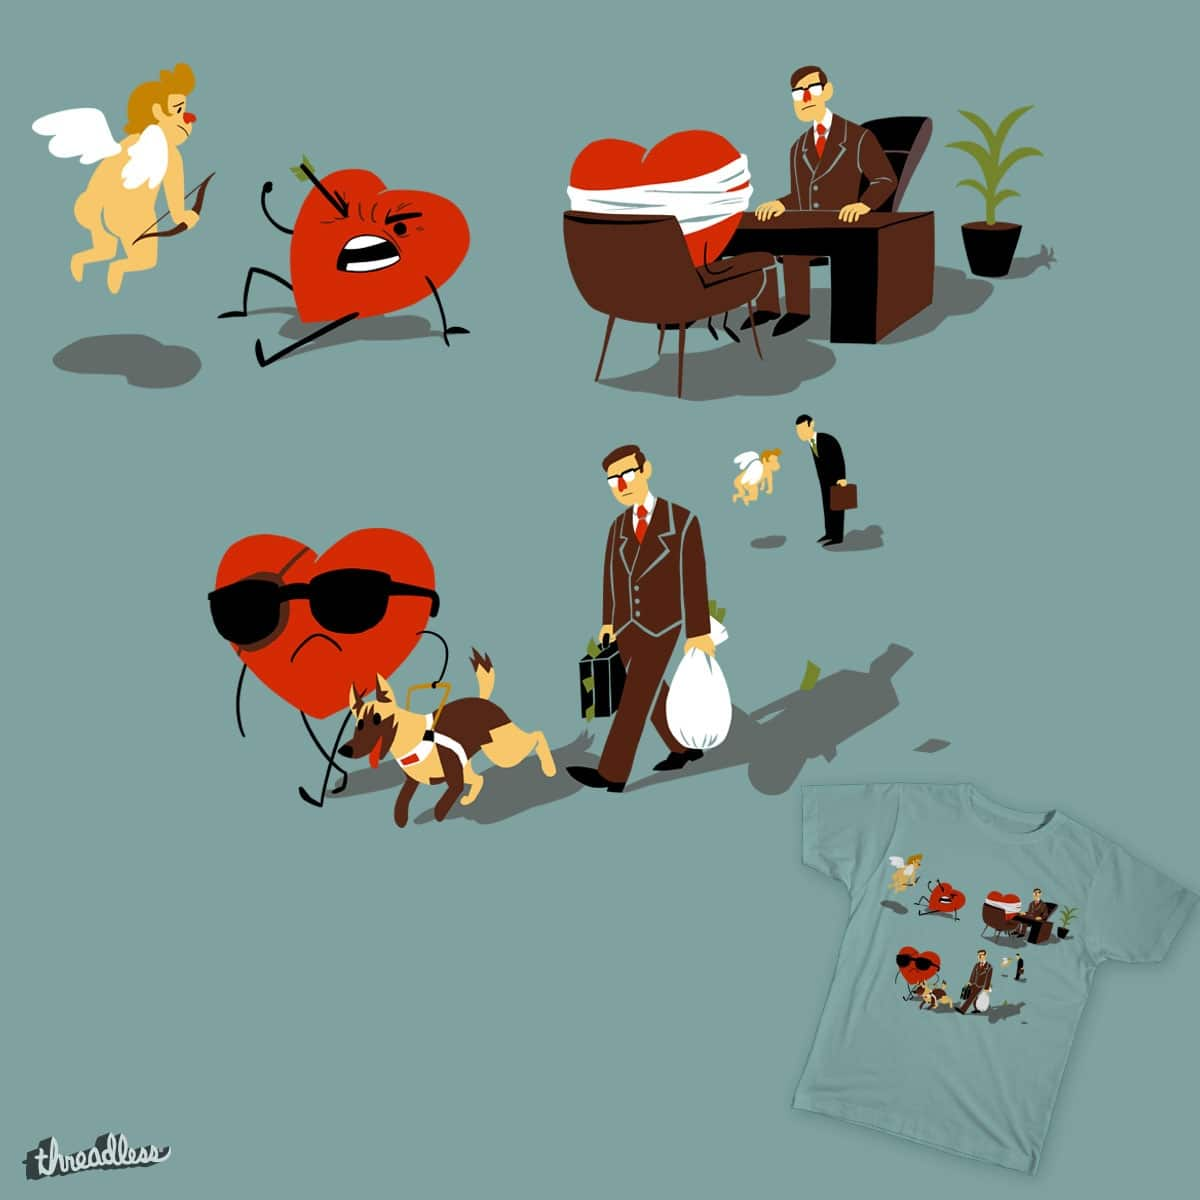 The Laws of Love by DominoD on Threadless